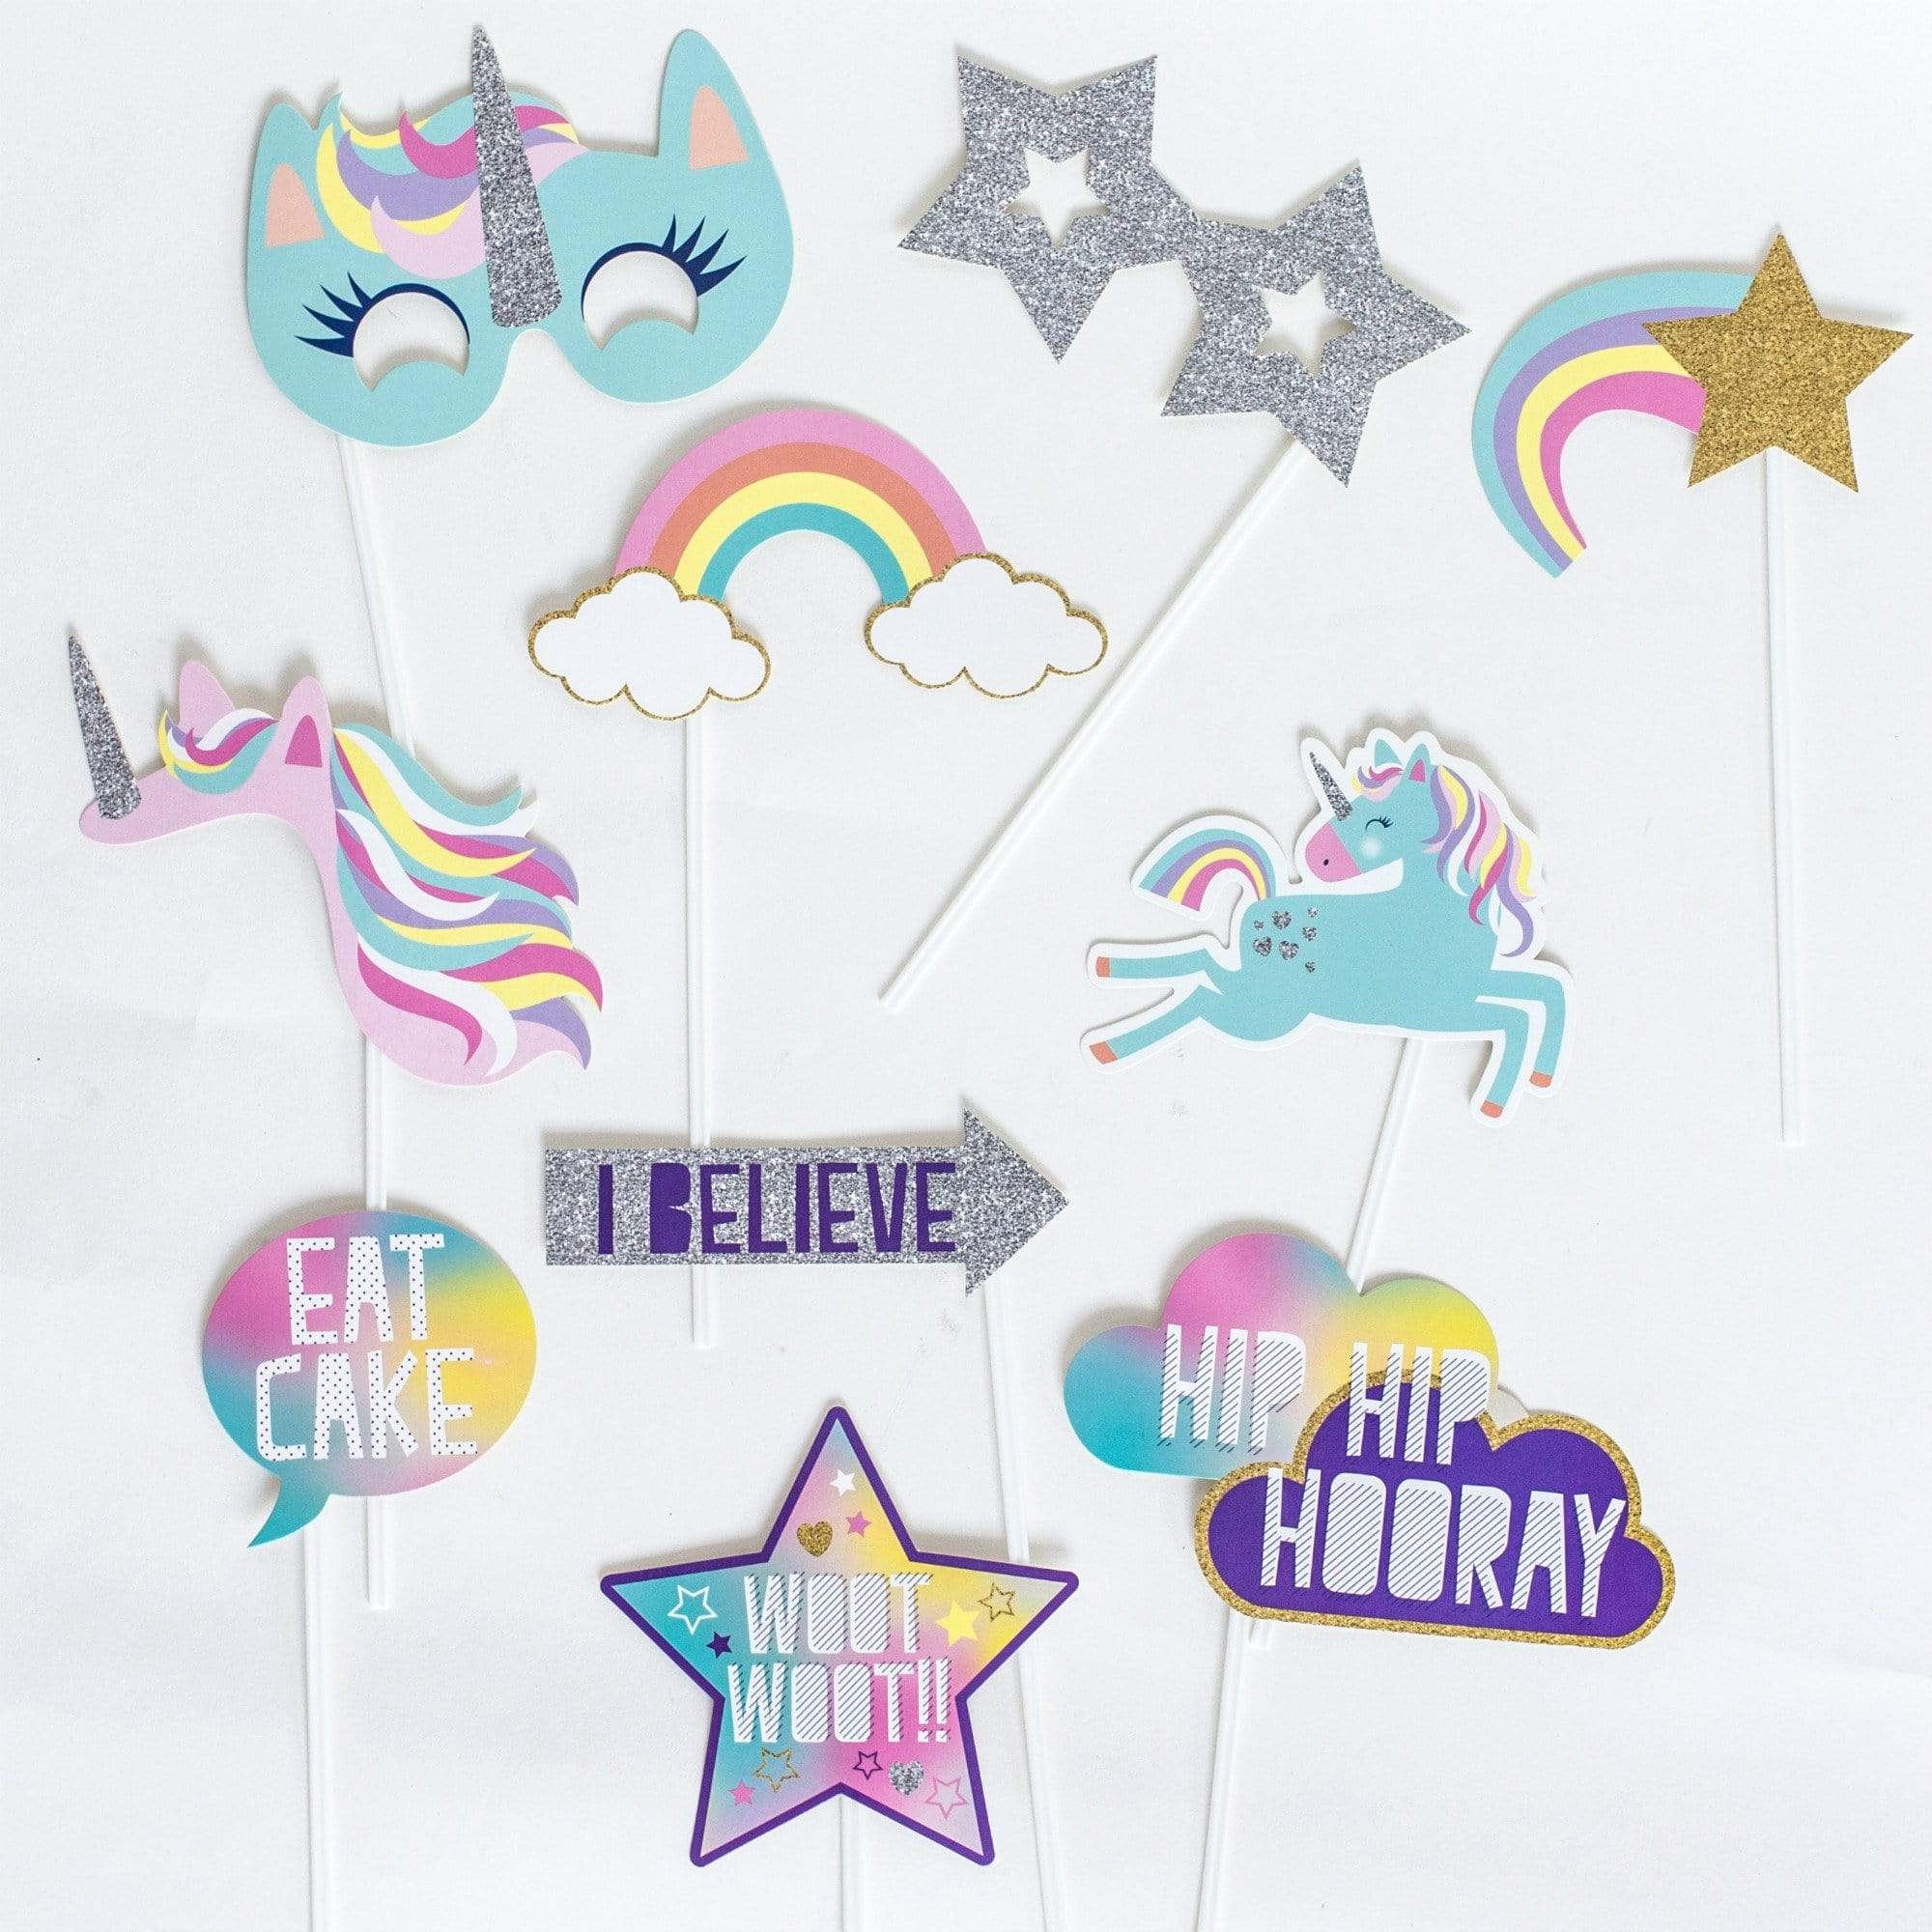 Unicorn Party Photo Props | Unicorn Party Ideas | Unicorn Party Supplies UK